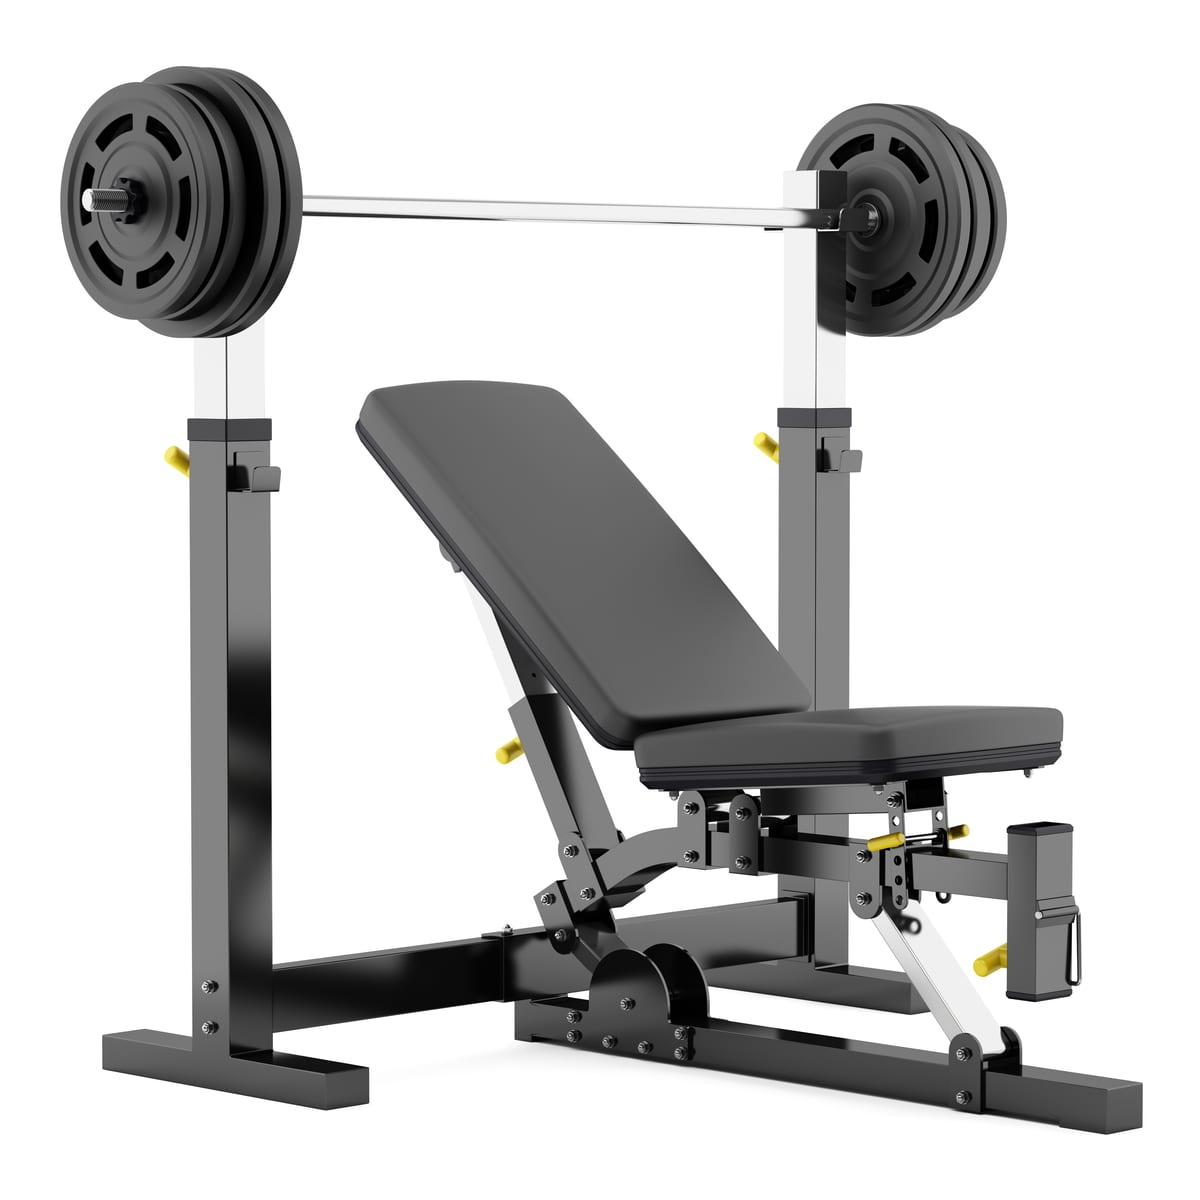 p weight utility goods sporting dick noimagefound s weights marcy with bench pro is benches